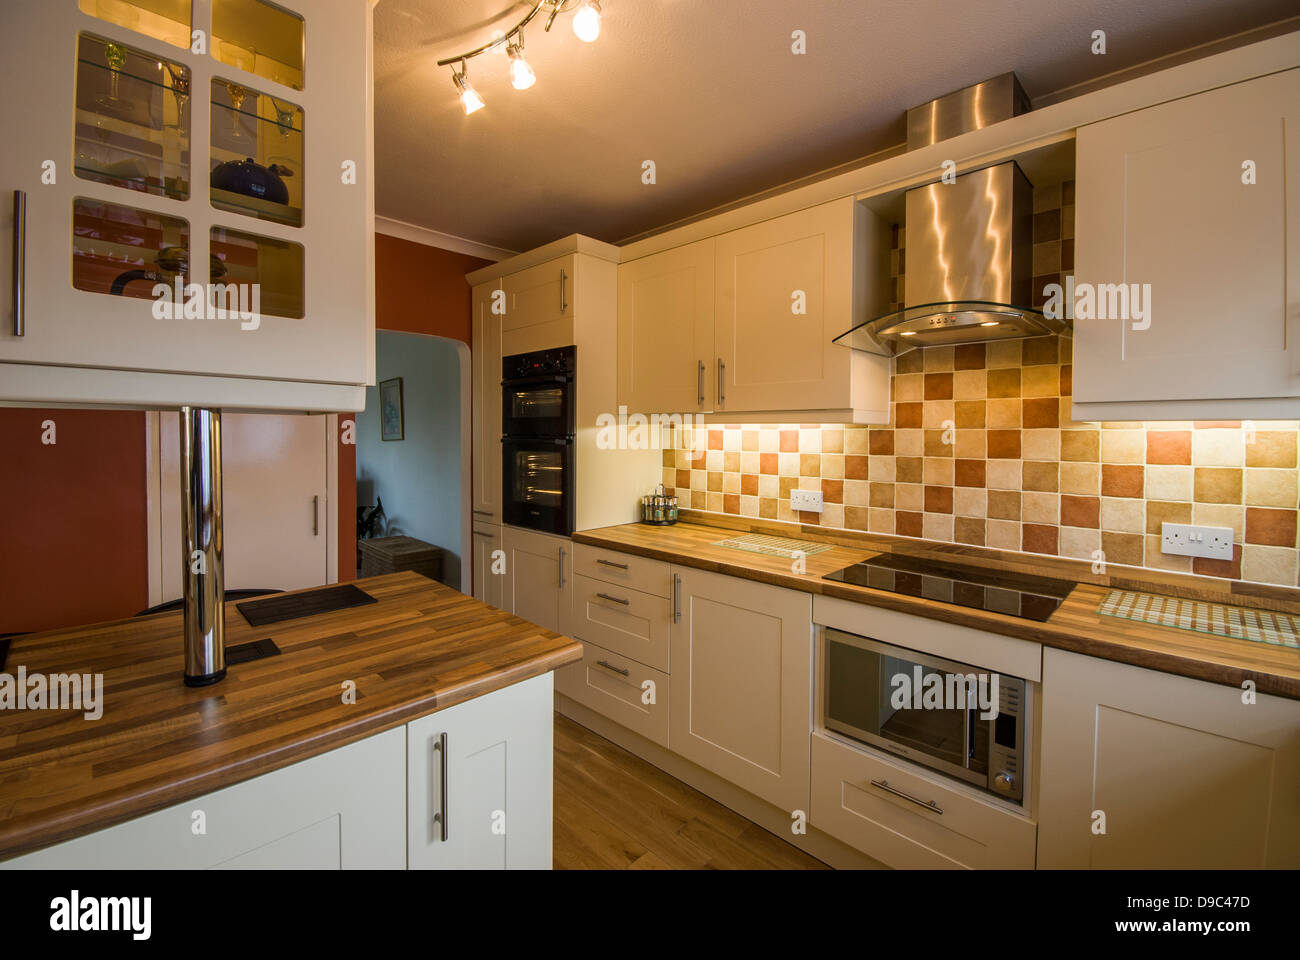 Granit Arbeitsplatte Ivory Brown Tiled Worktops Stock Photos Tiled Worktops Stock Images Alamy